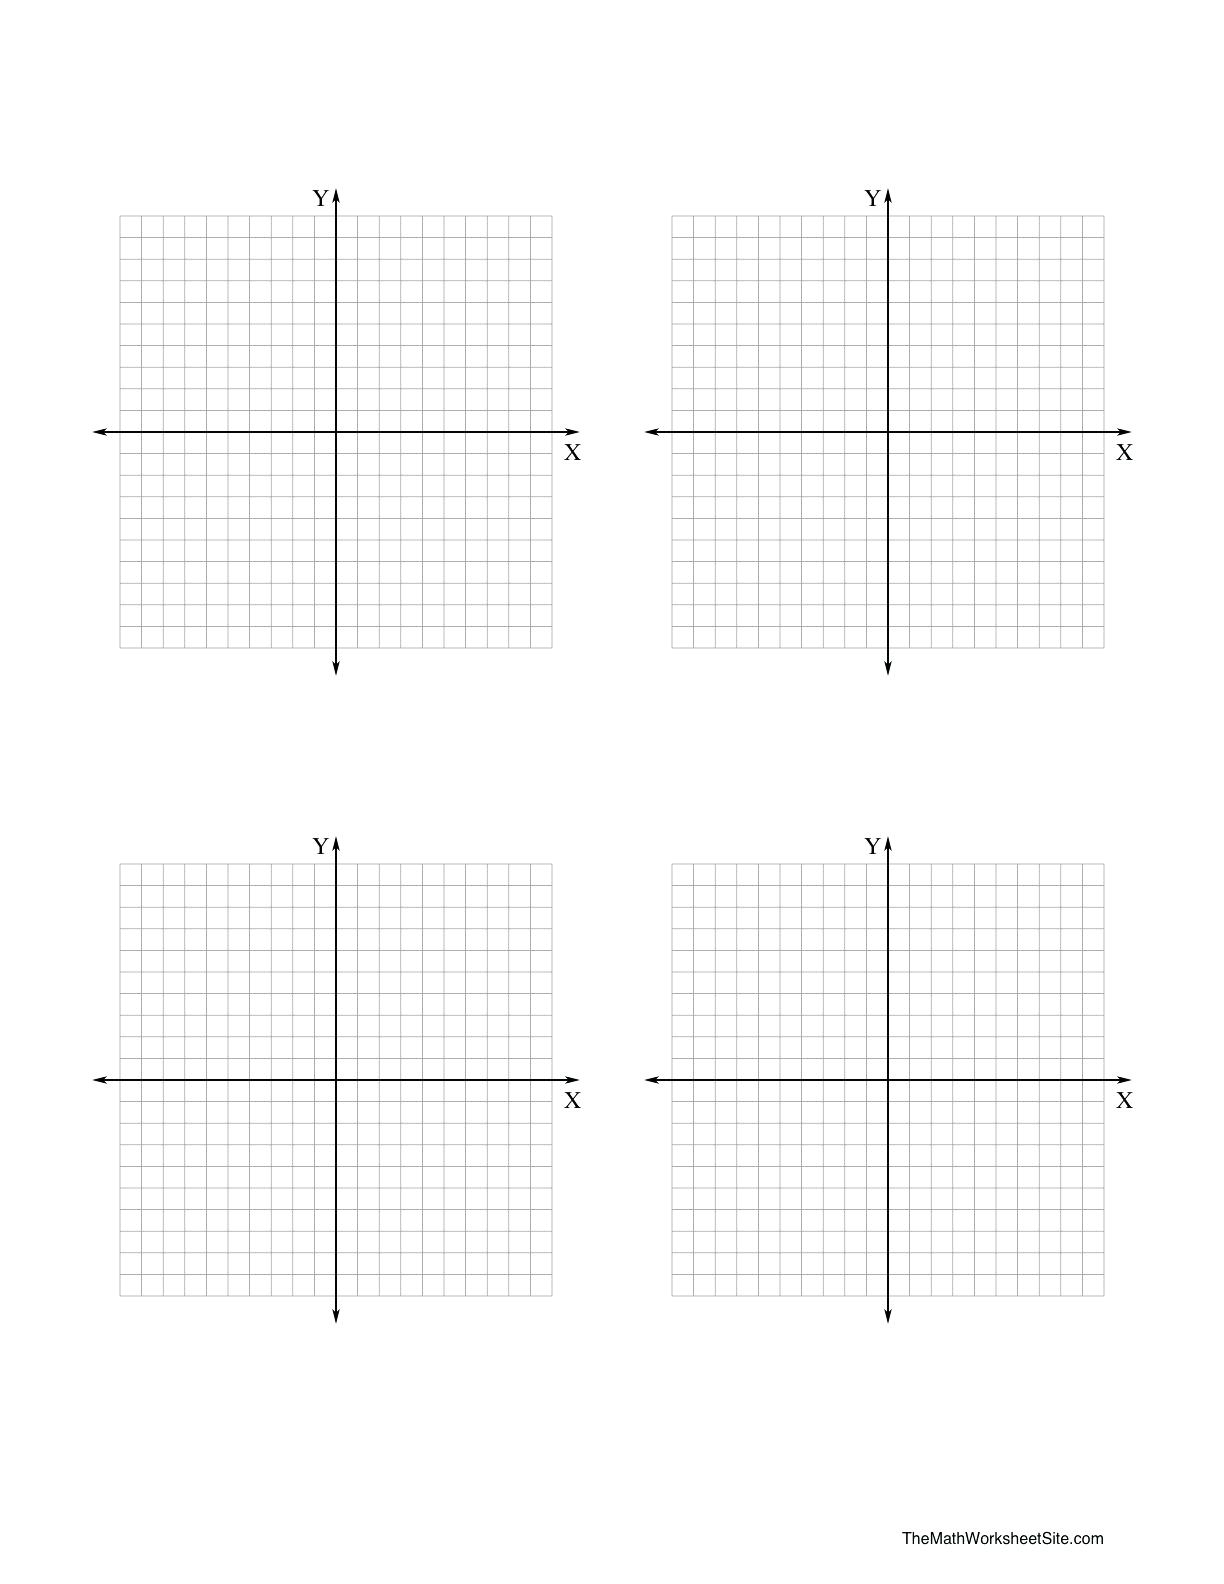 Plane Graphing Math Excel Ordered Pairs Worksheet Graphing Ordered - Free Printable Coordinate Graphing Worksheets